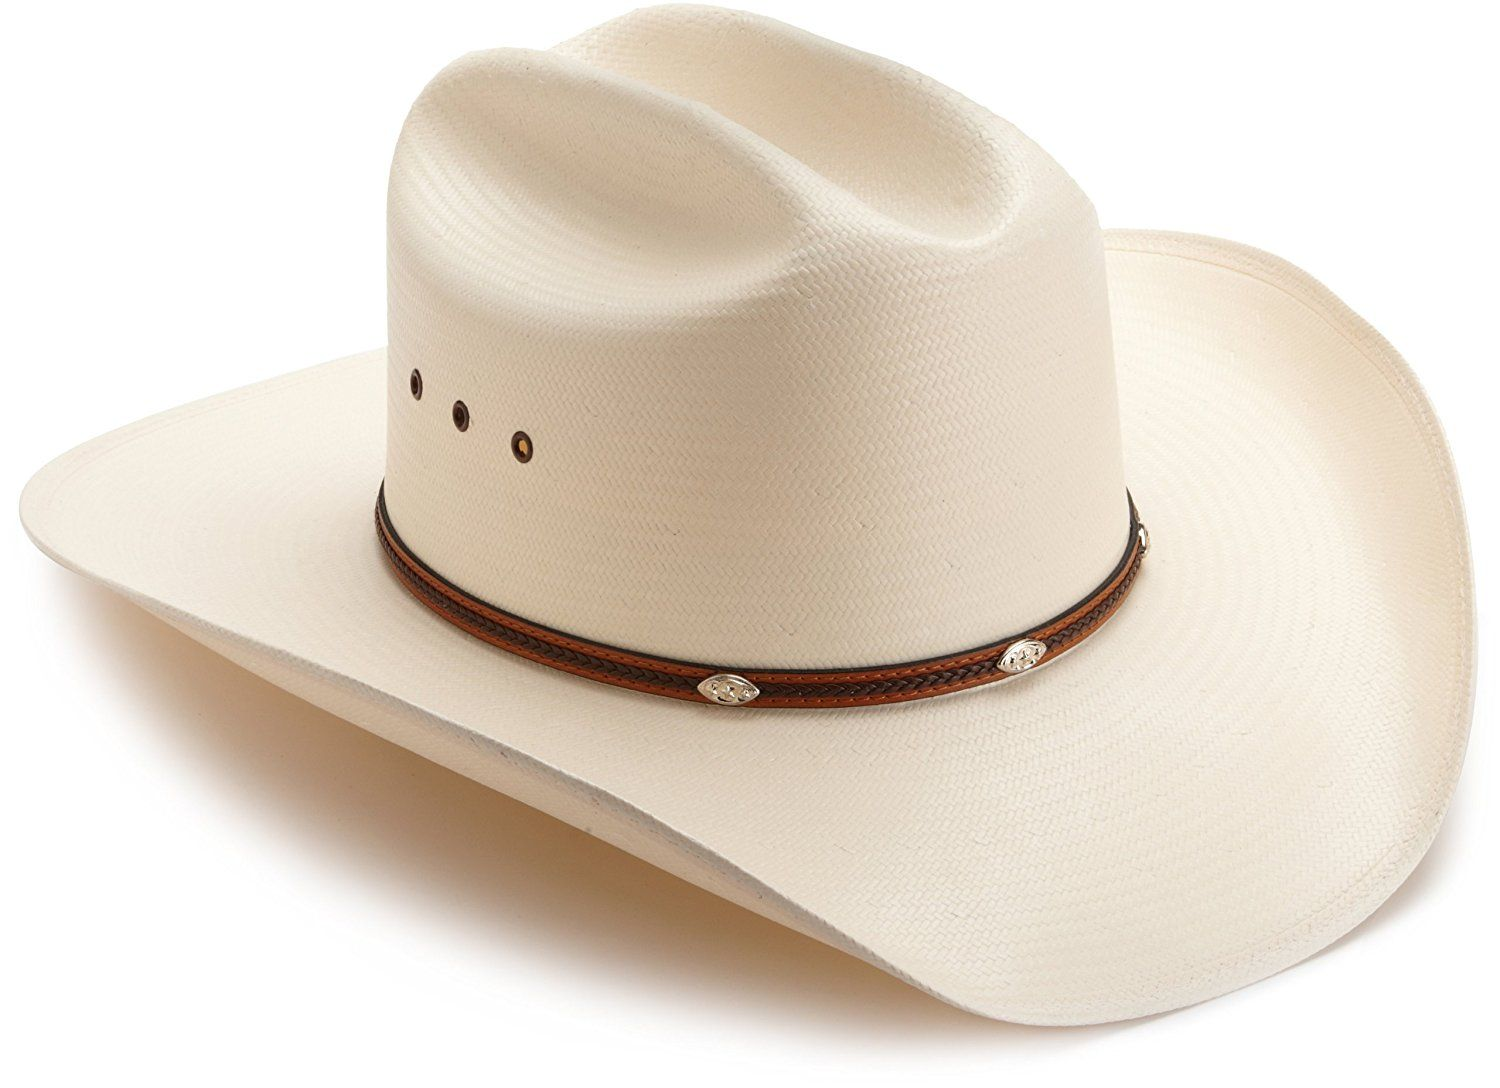 Stetson Cowgirl Hats - Parchment N Lead 77c43281009c